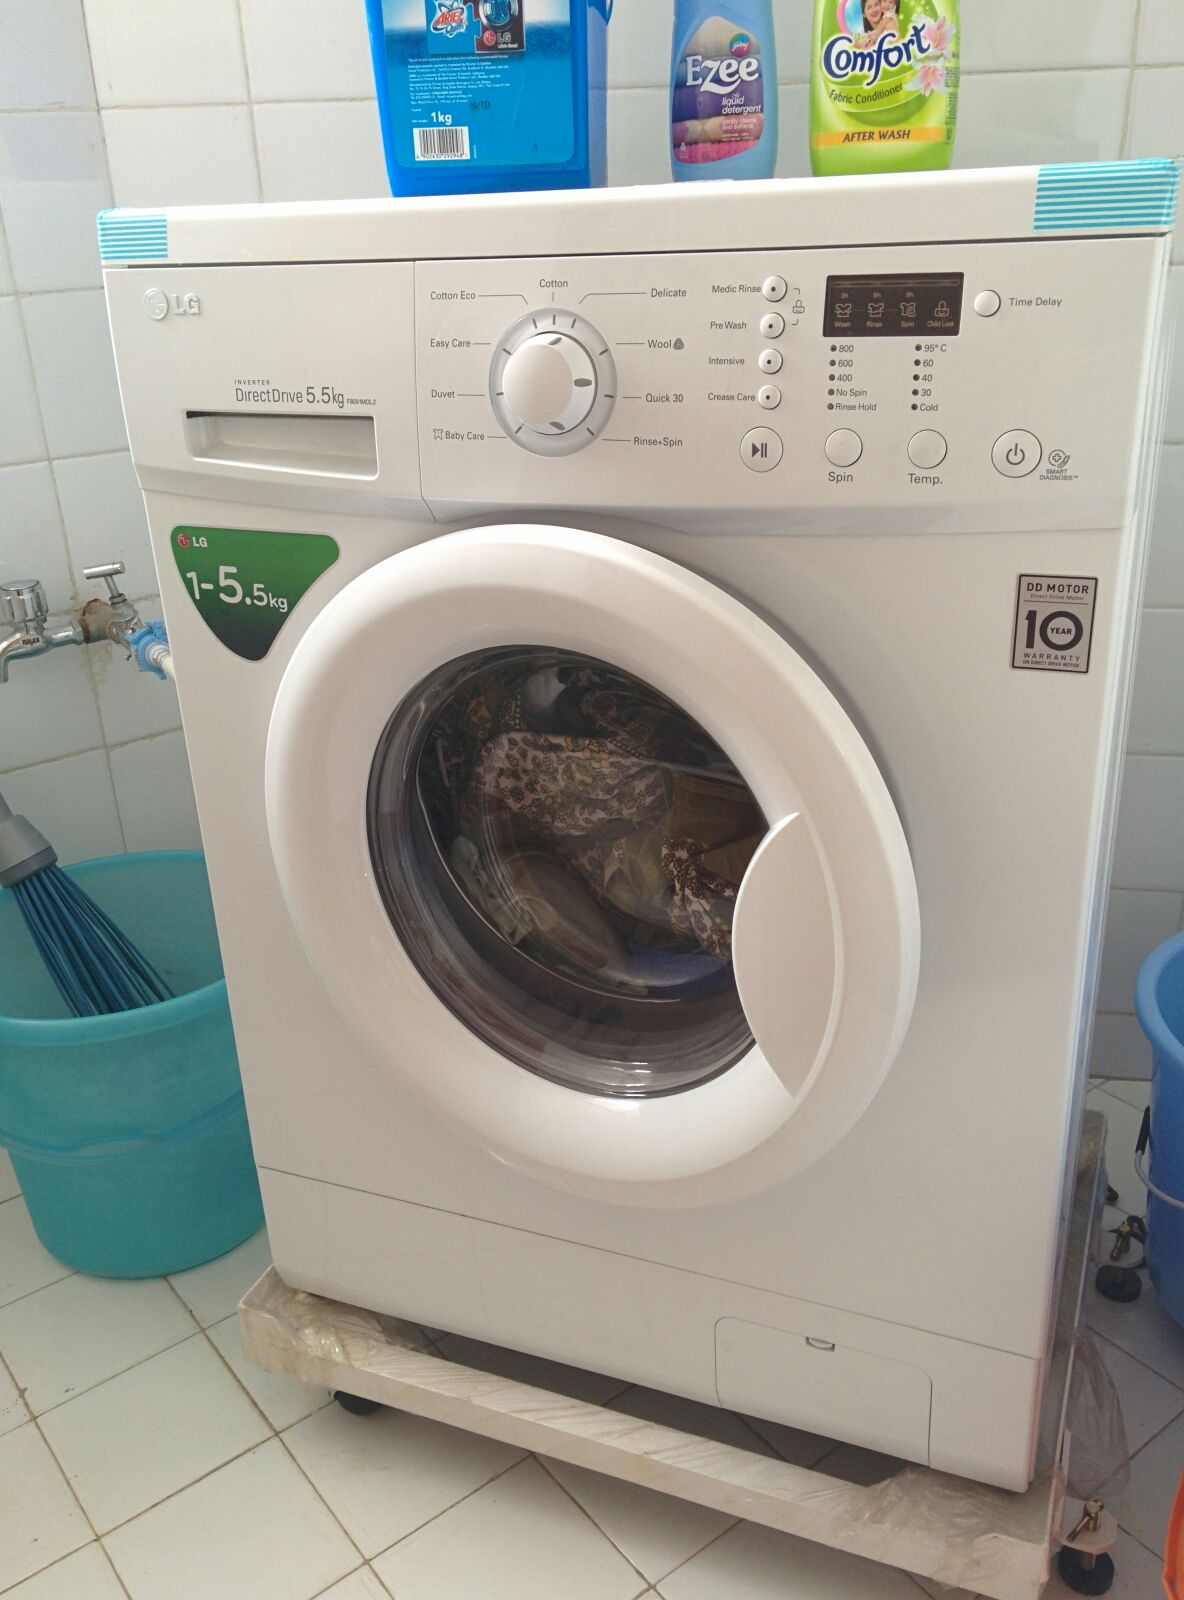 Washing machine. All is under beautification process. Ready for Feb 2015.